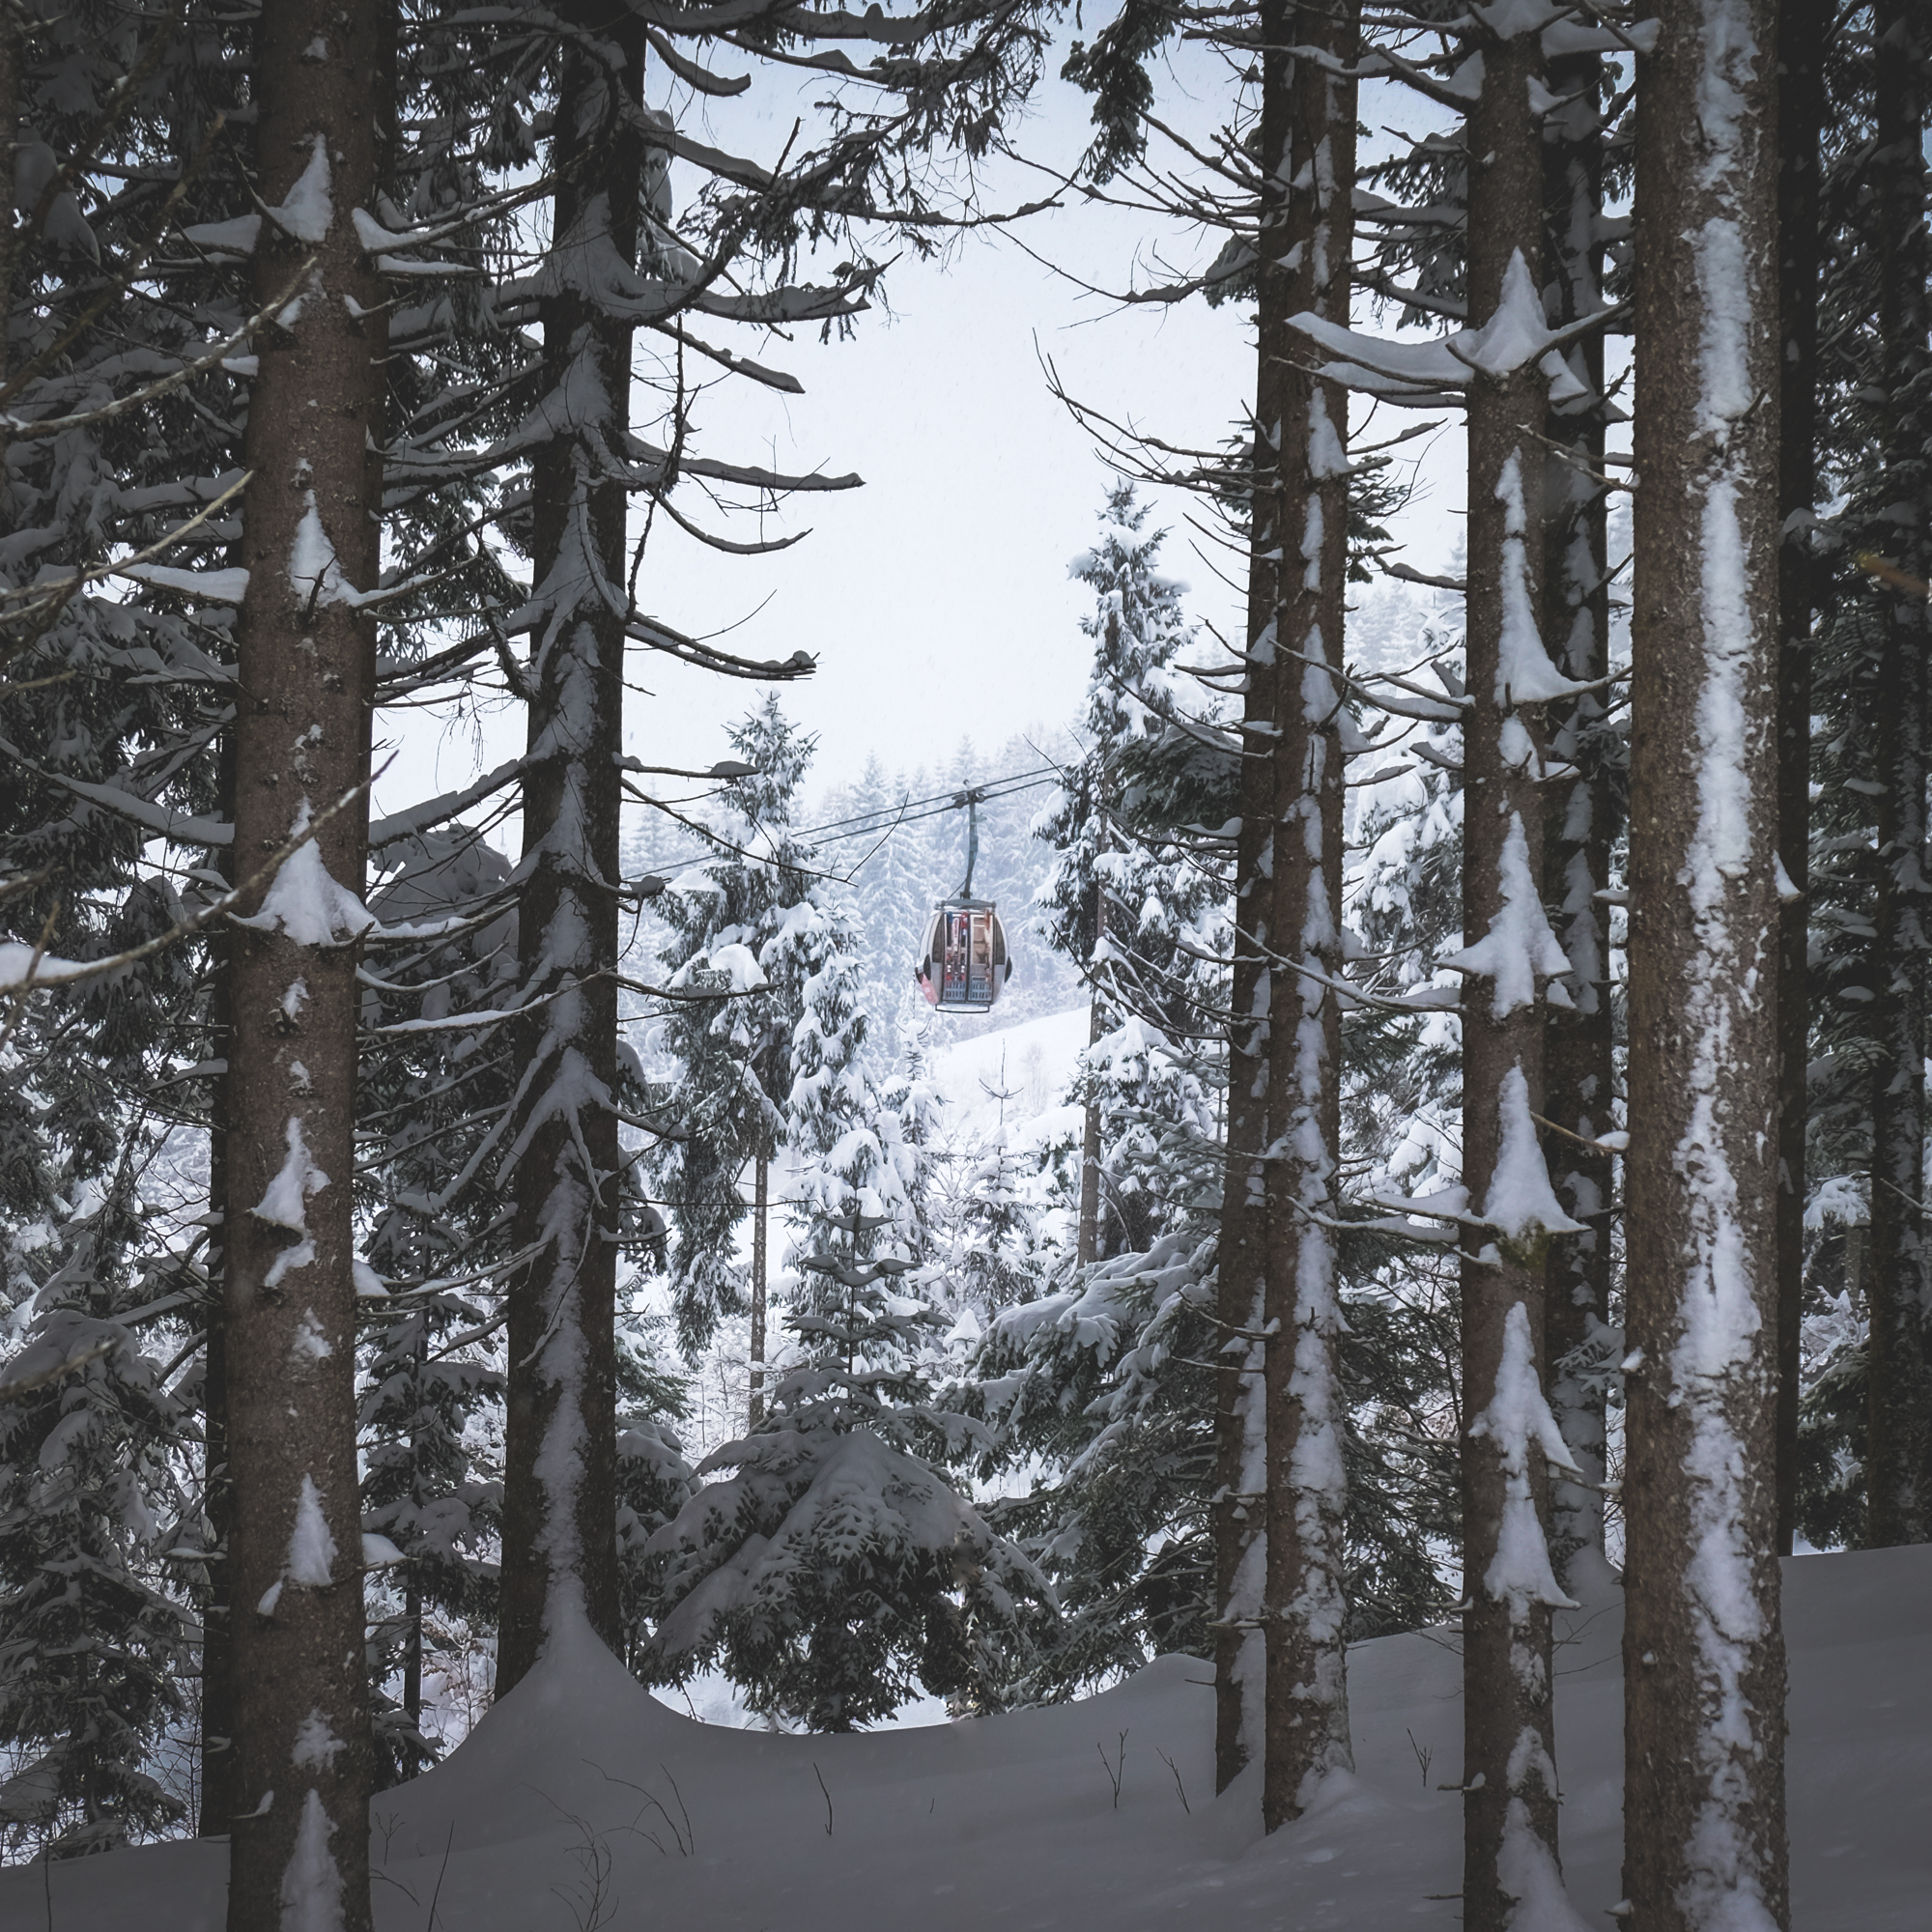 ski life as seen through the forest in Kitzbühel, Austria